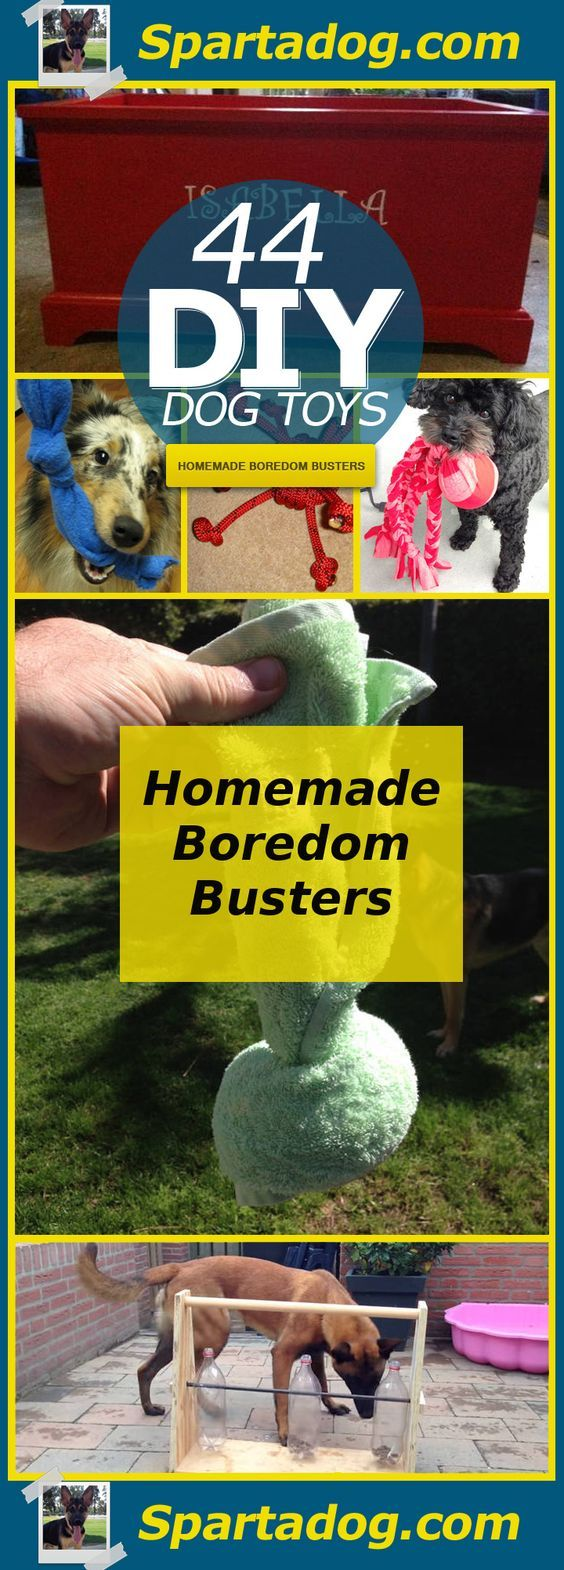 44 Really Cool Homemade DIY Dog Toys Your Dog Will Love at Spartadog.com:                                                                                                                                                                                 More